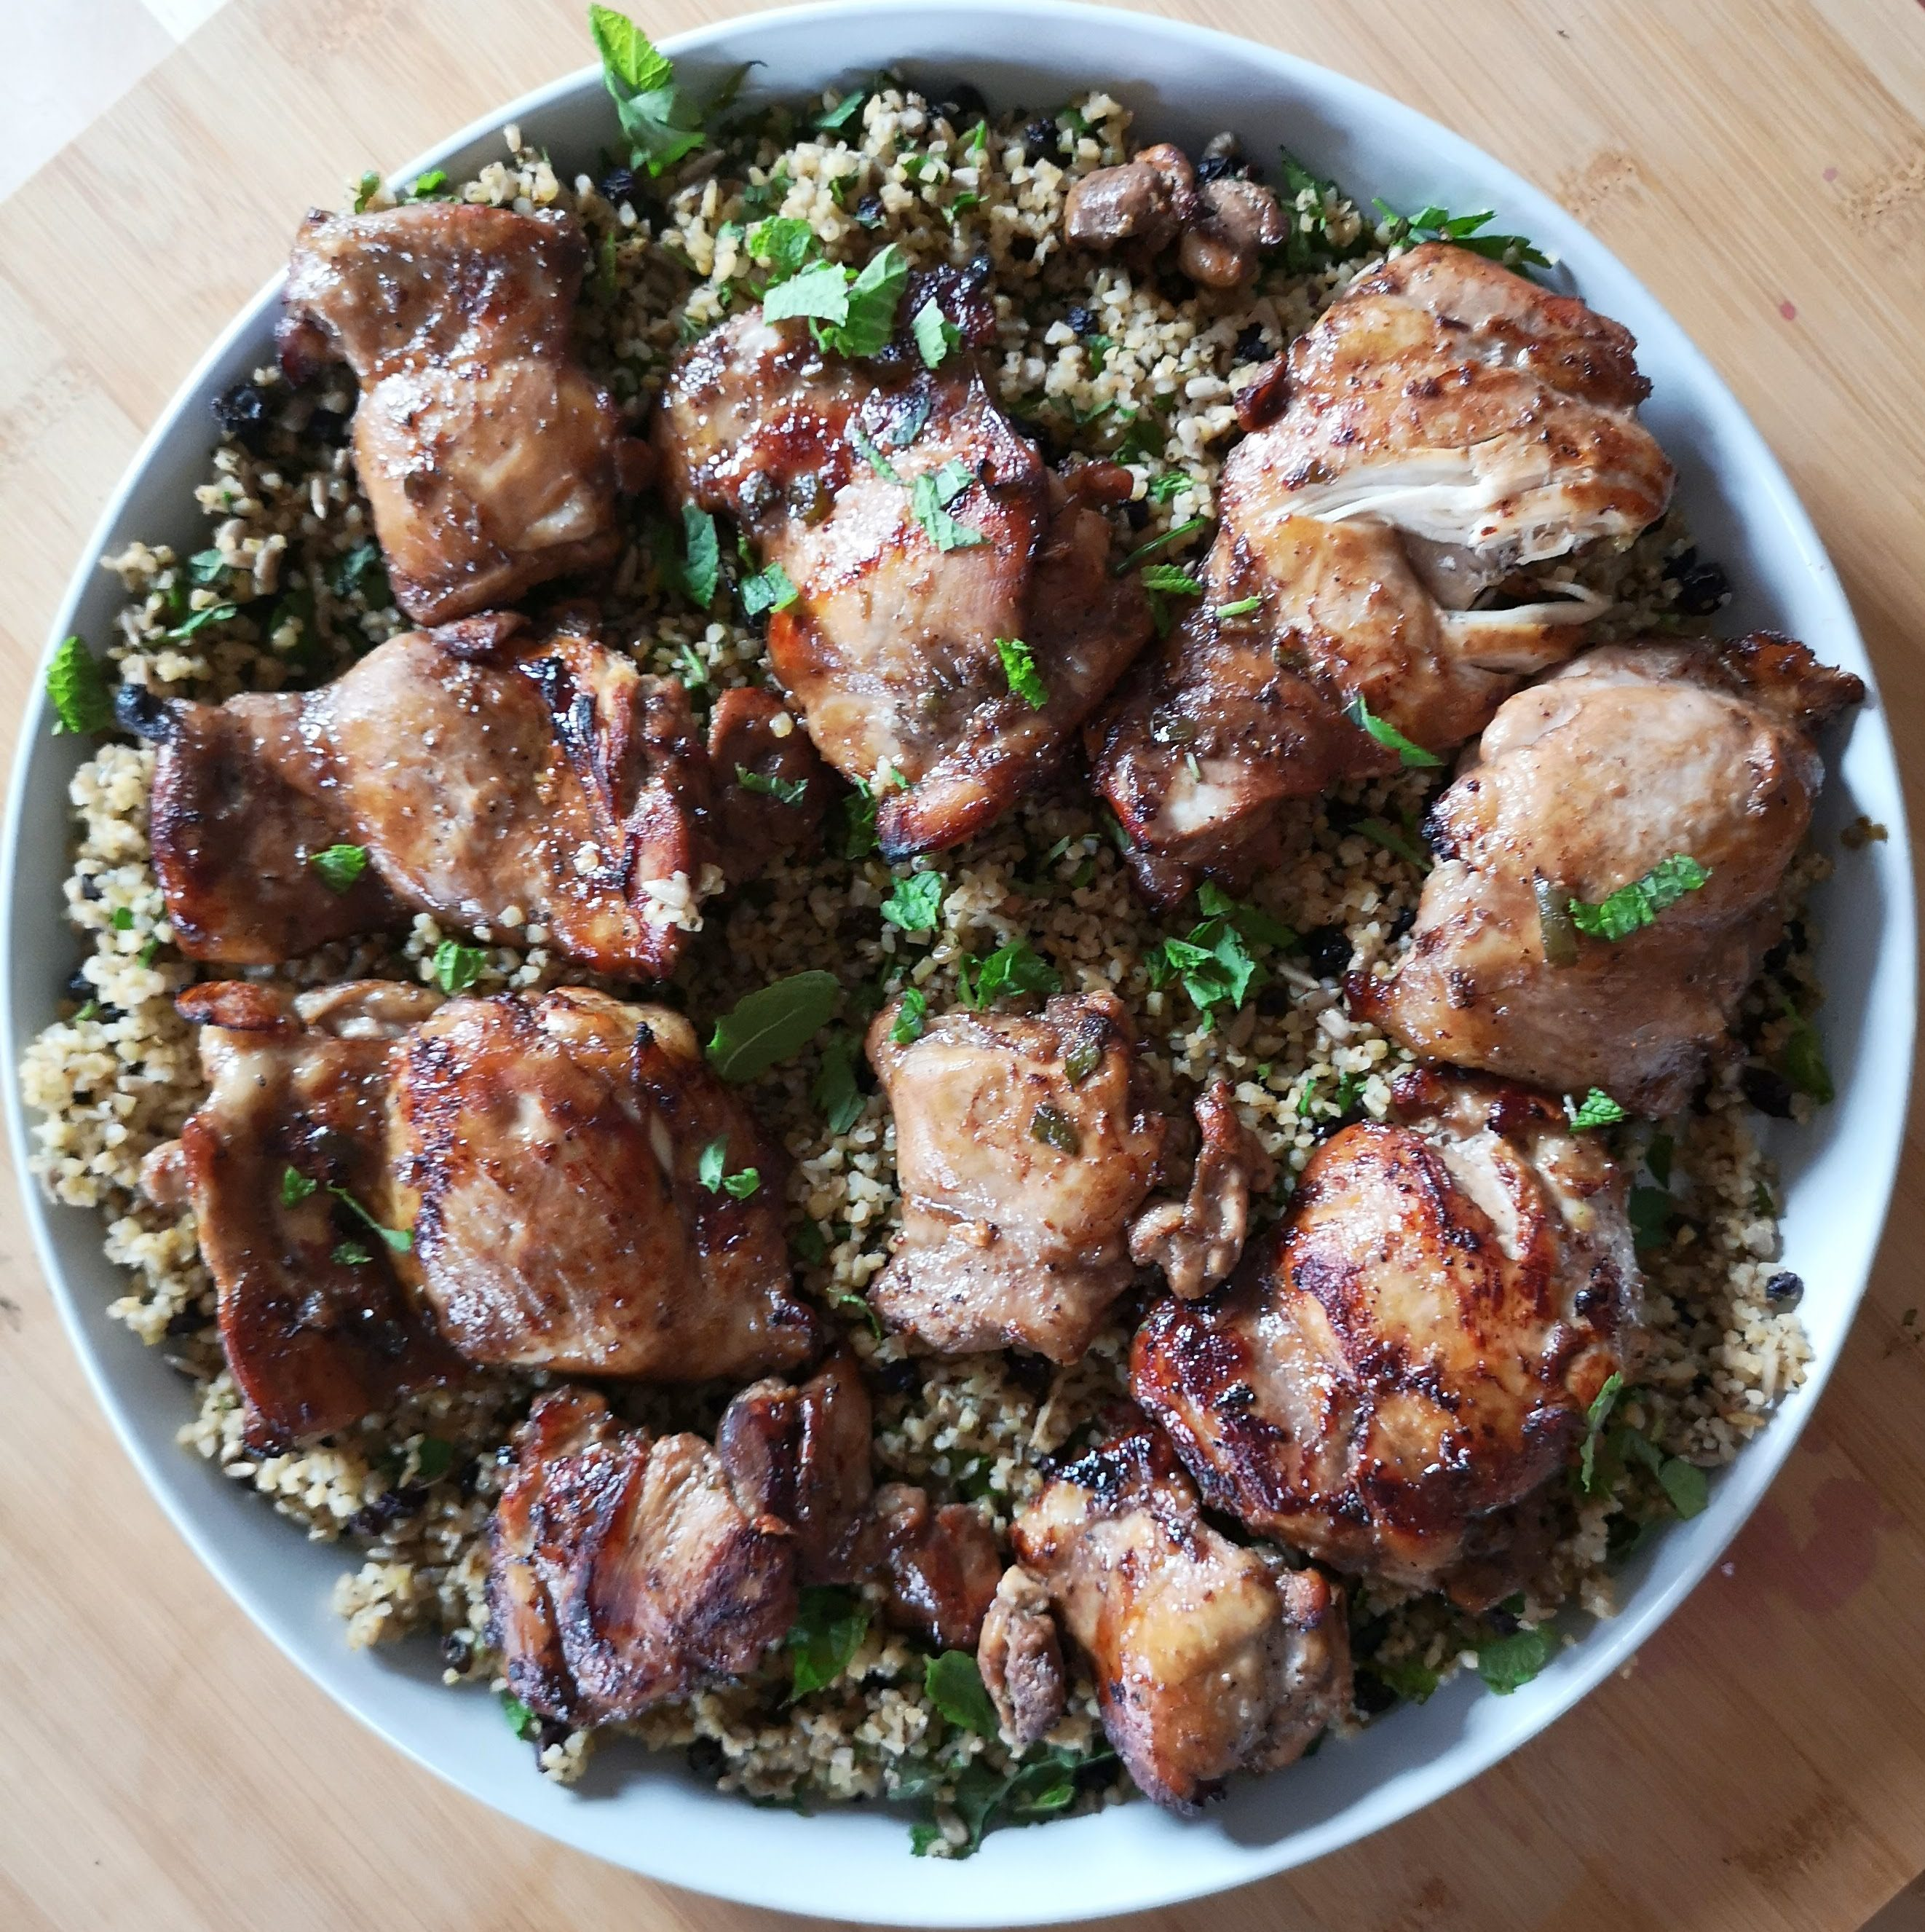 Pomegranate molasses chicken with bulgar wheat salad Honey & Co